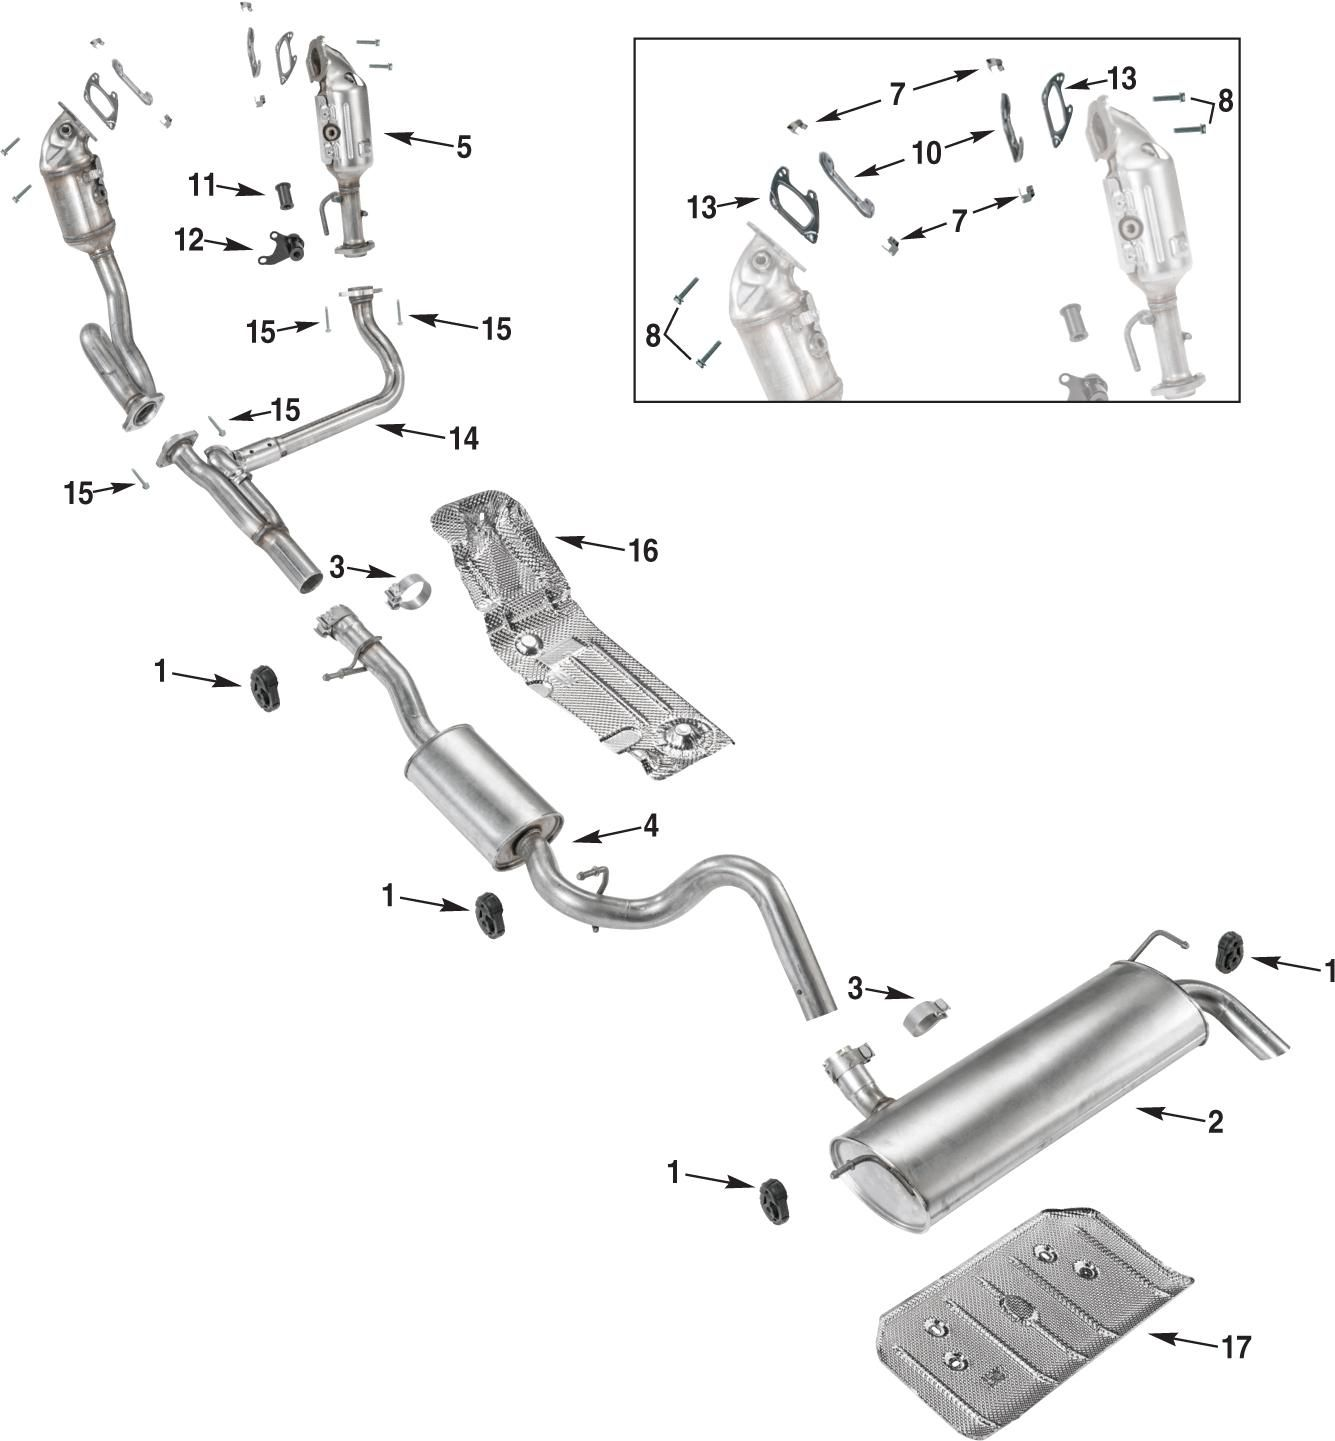 hight resolution of jeep exhaust diagram wiring diagram blog 2012 jeep wrangler exhaust diagram jeep exhaust diagram